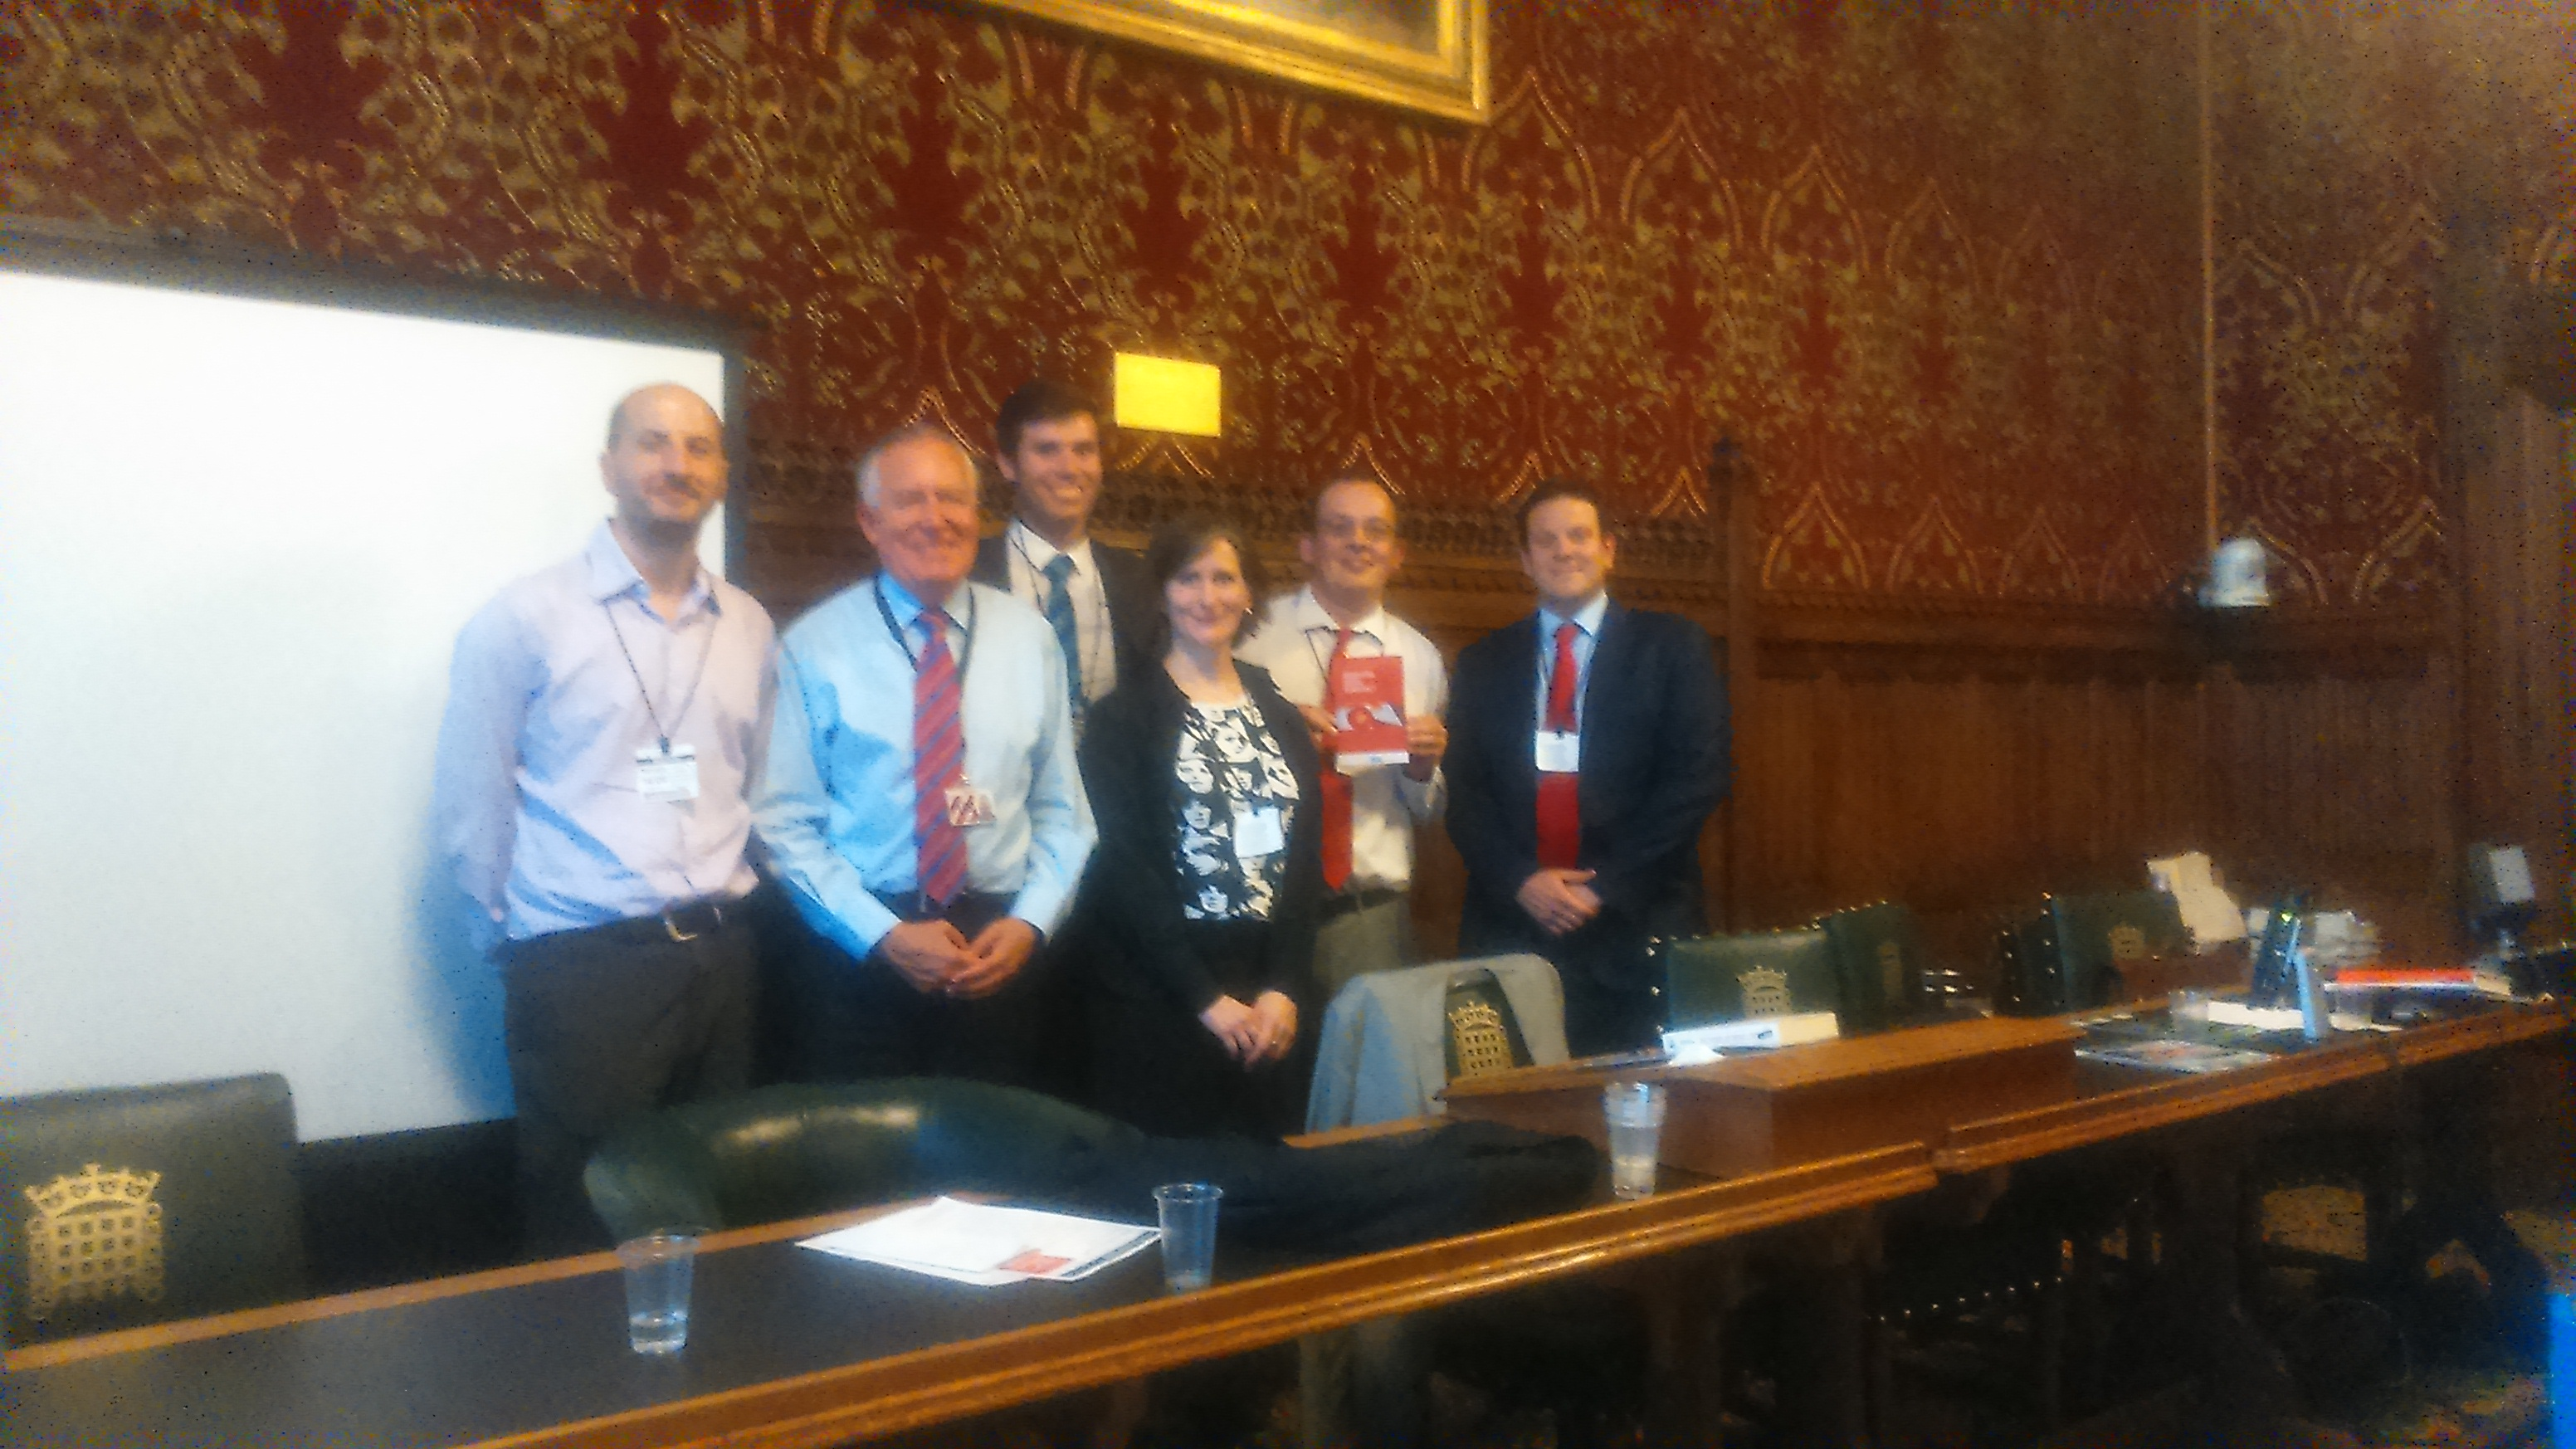 House of Commons launch of Rebuilding social democracy